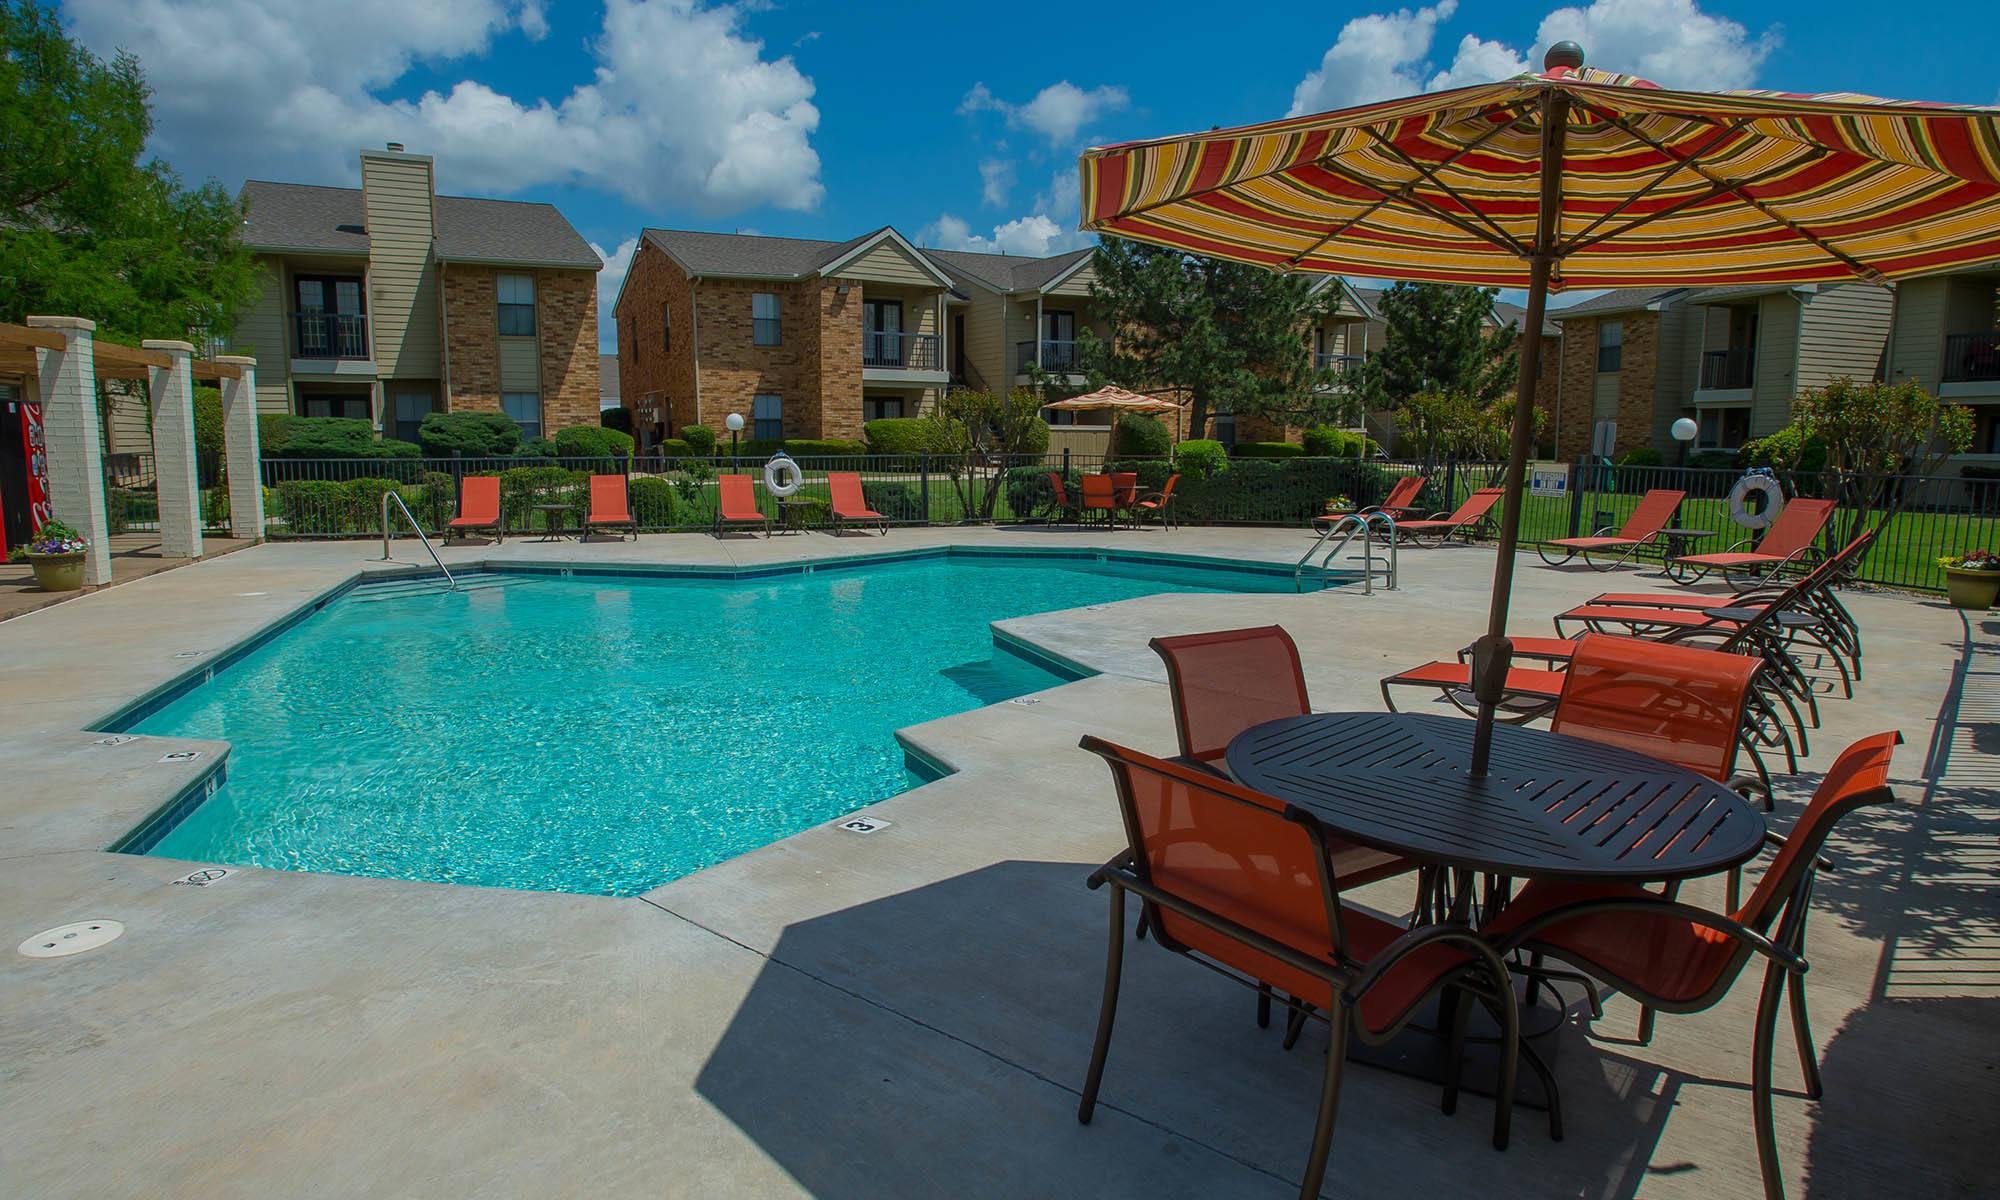 View all that Cimarron Trails Apartments has to offer